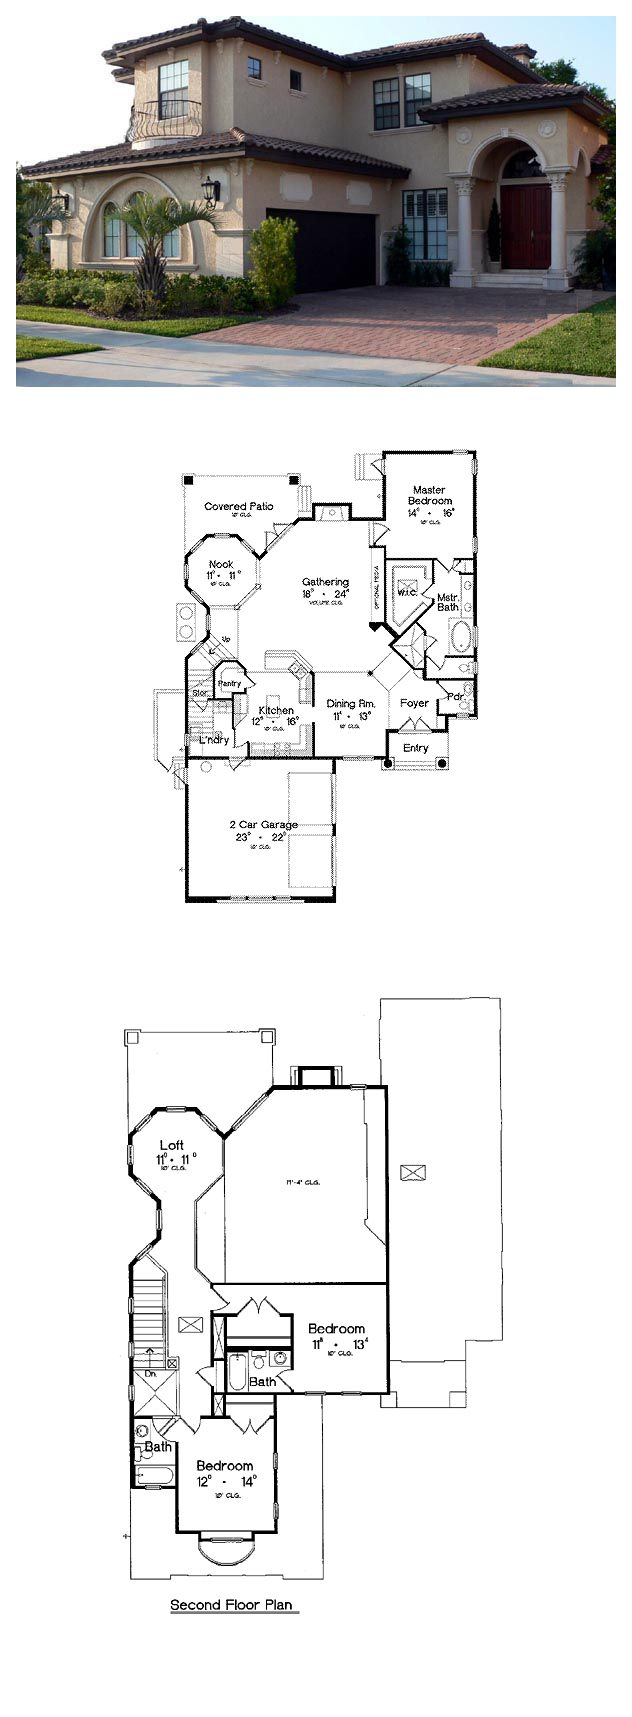 Mediterranean Style House Plan 64616 With 3 Bed 4 Bath 2 Car Garage Mediterranean Style House Plans Mediterranean House Plans Dream House Plans